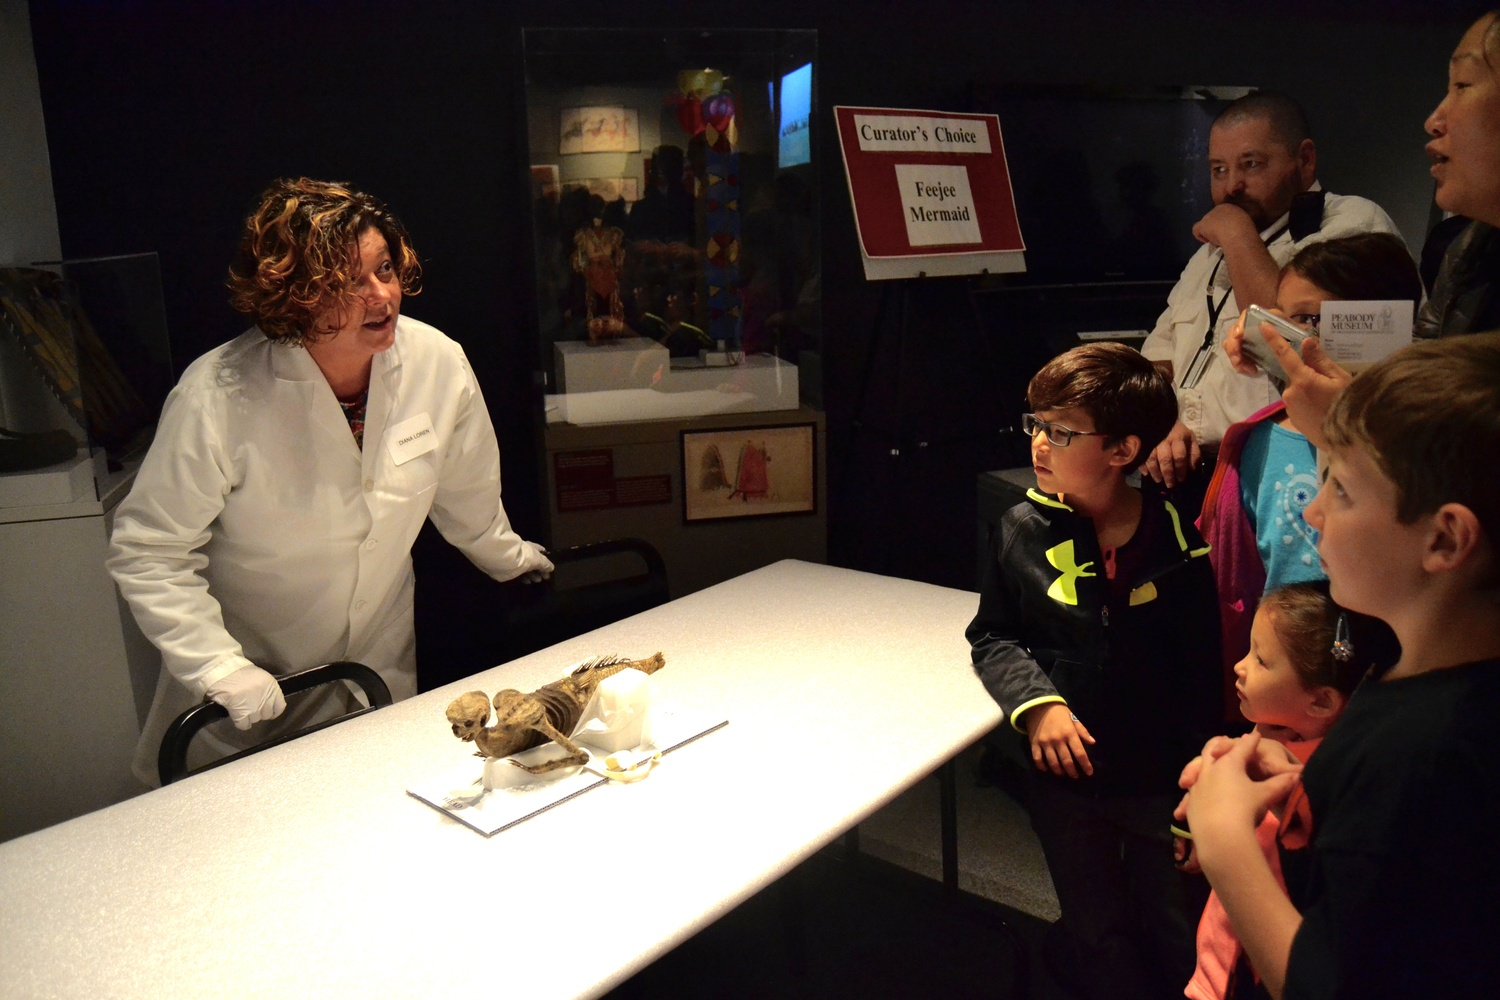 Peabody Director of Academic Partnerships Diana A. Loren shows an audience the Feejee Mermaid. The Peabody Museum of Archaeology and Ethnology celebrated its 150th anniversary on Friday.